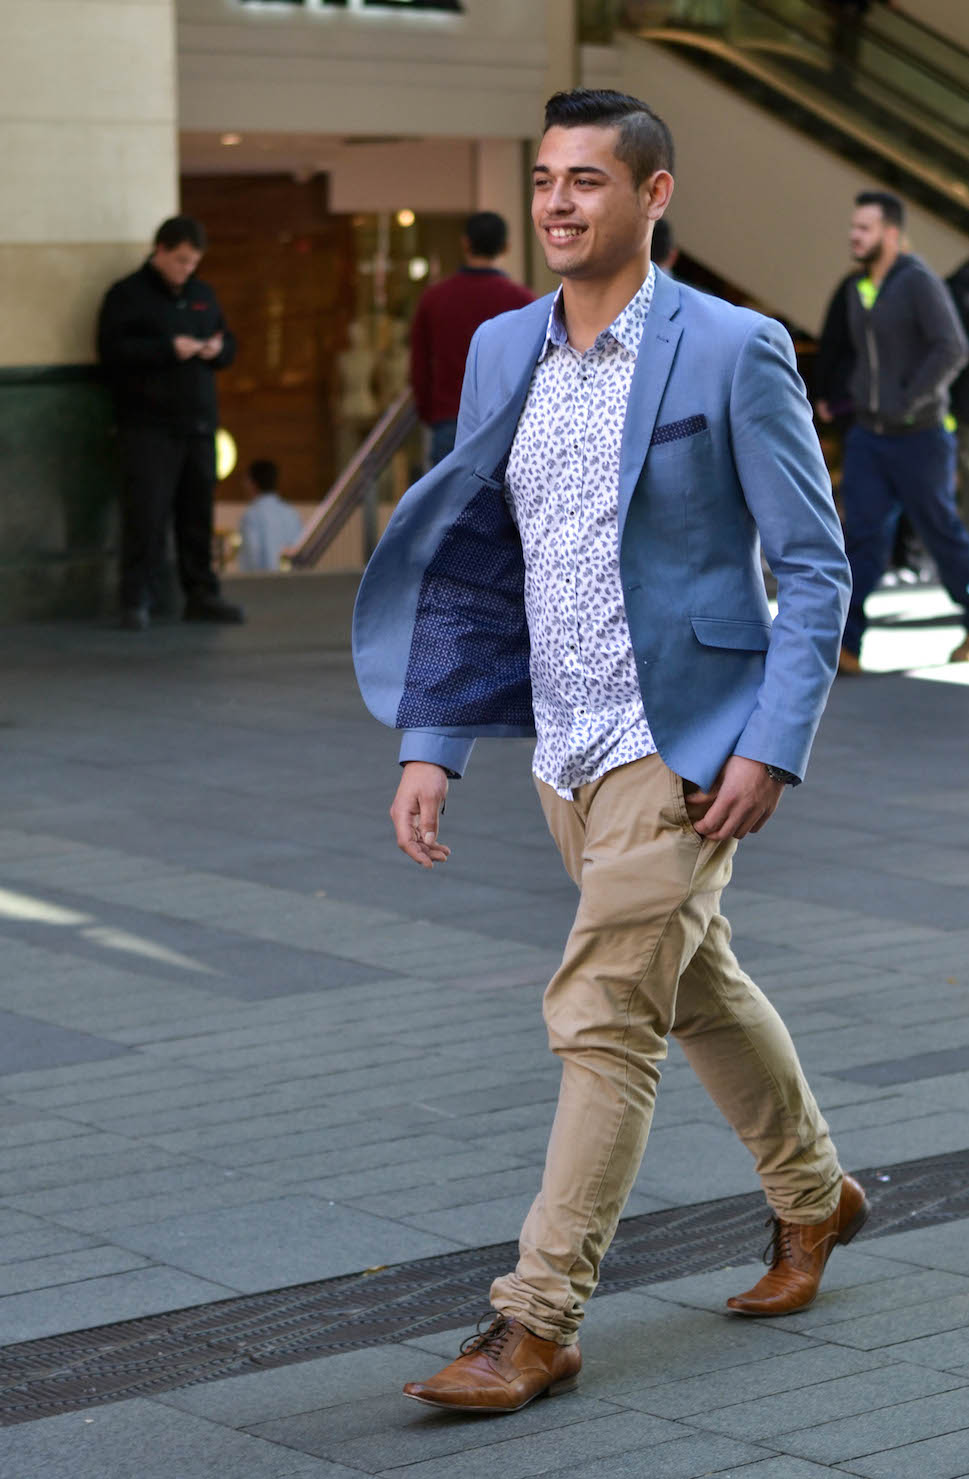 """NSW: Tyler Ransfield, sales, Pitt St. """"I'd describe my style as 'class-meets-swag'."""" Photo: Alice Scriberras"""